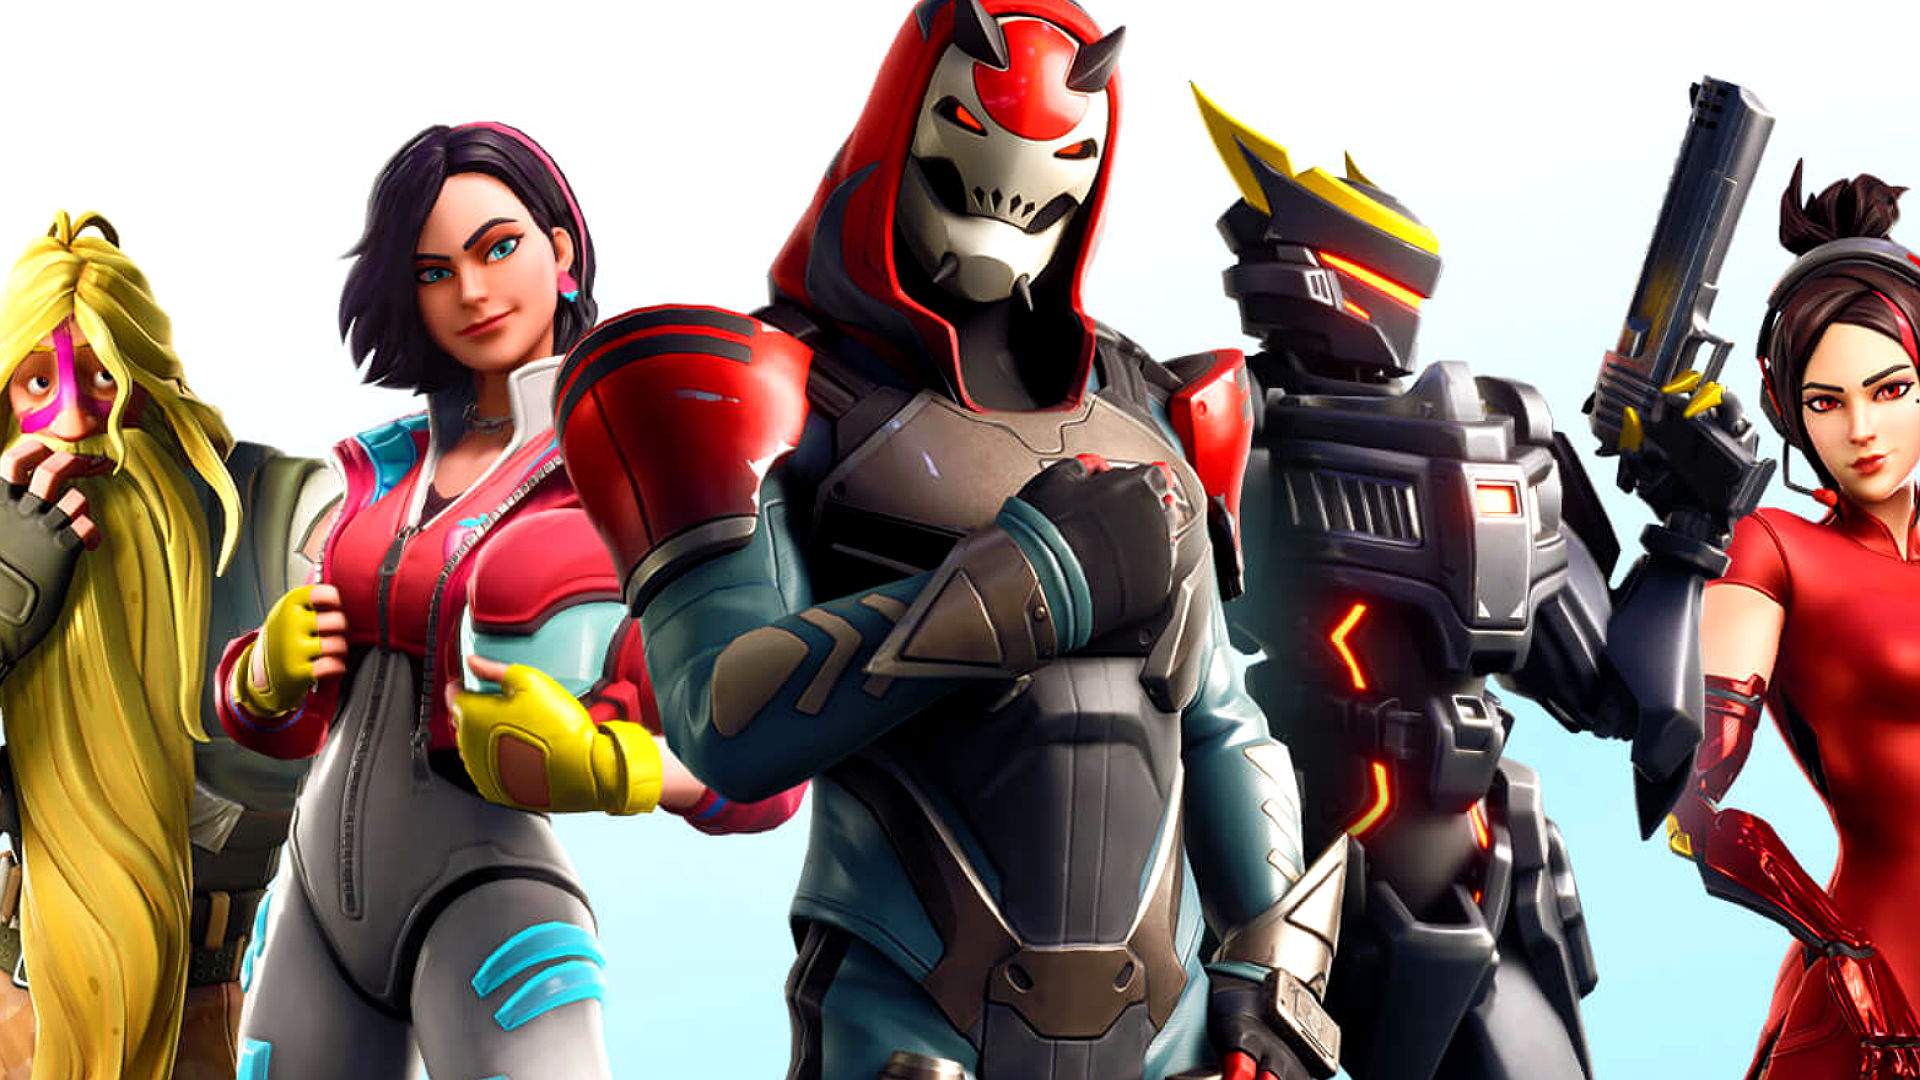 Cool Fortntie Skins / All skins leaked promo skins other outfits sets all packs.